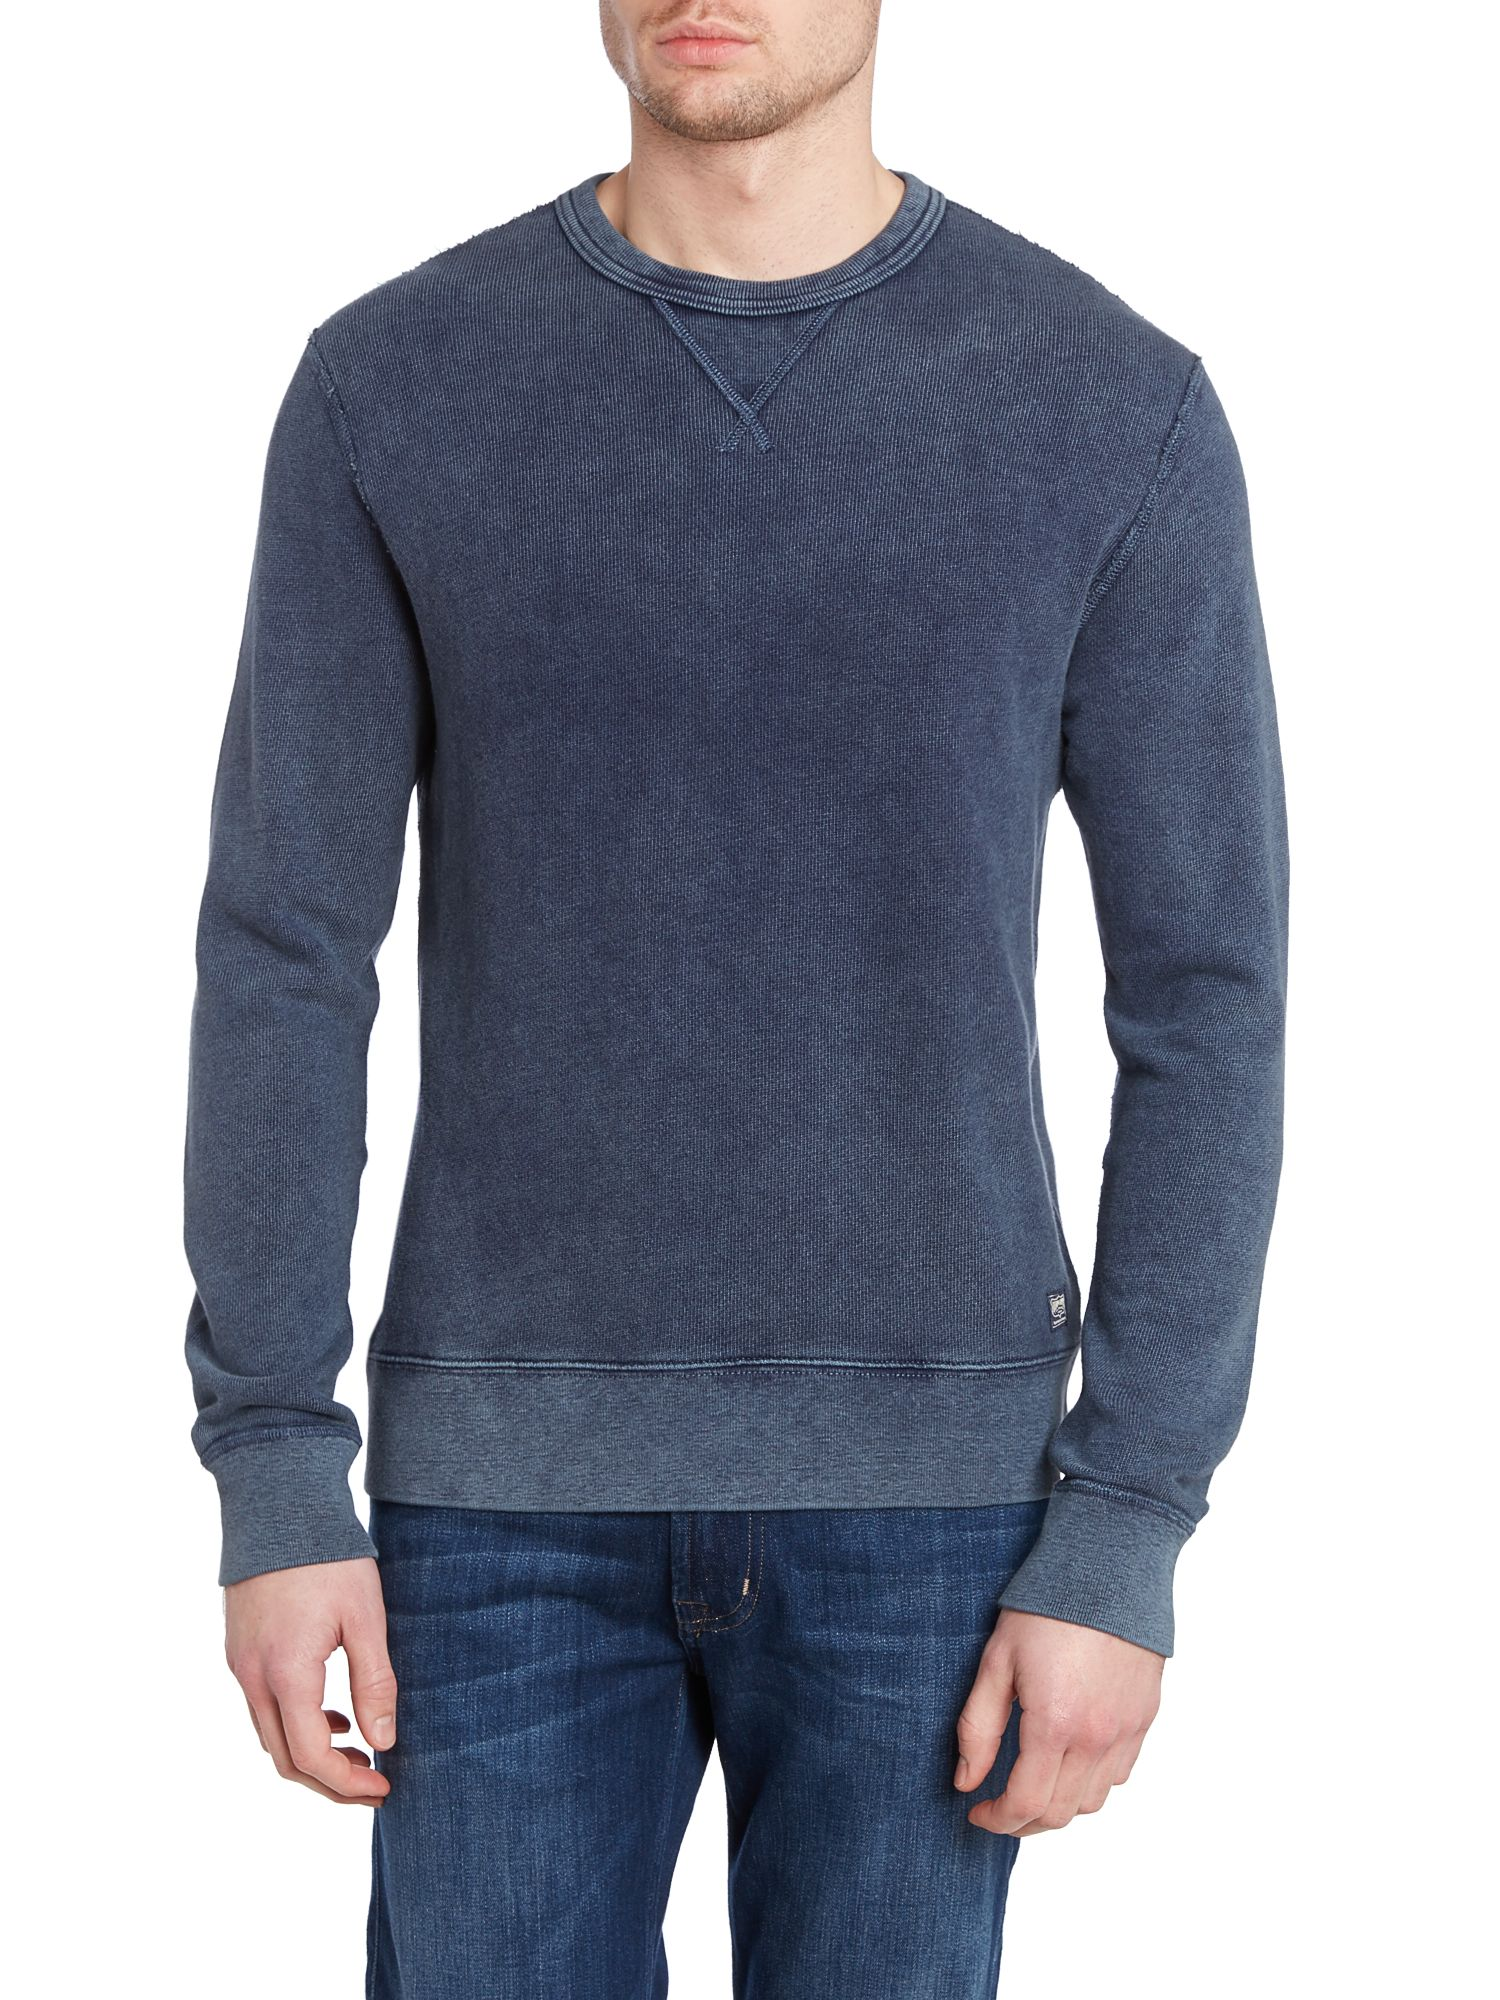 Crew neck knitted sweatshirt